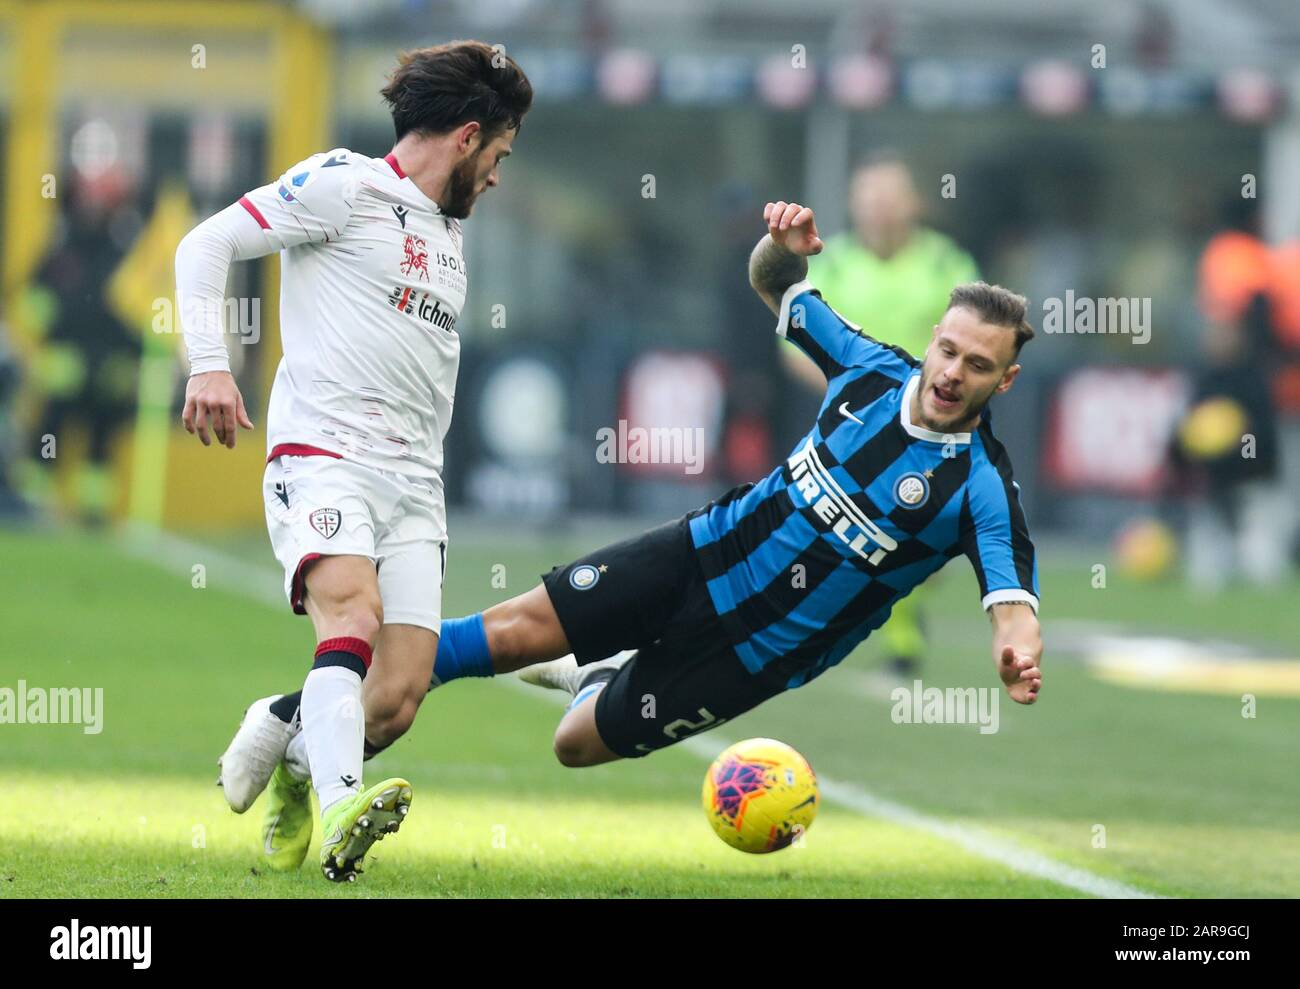 Milan, Italy. 26th Jan, 2020. FC Inter's Federico Dimarco (R) vies with  Cagliari's Nahitan Nandez during a Serie A soccer match between FC Inter  and Cagliari in Milan, Italy, Jan. 26, 2020.